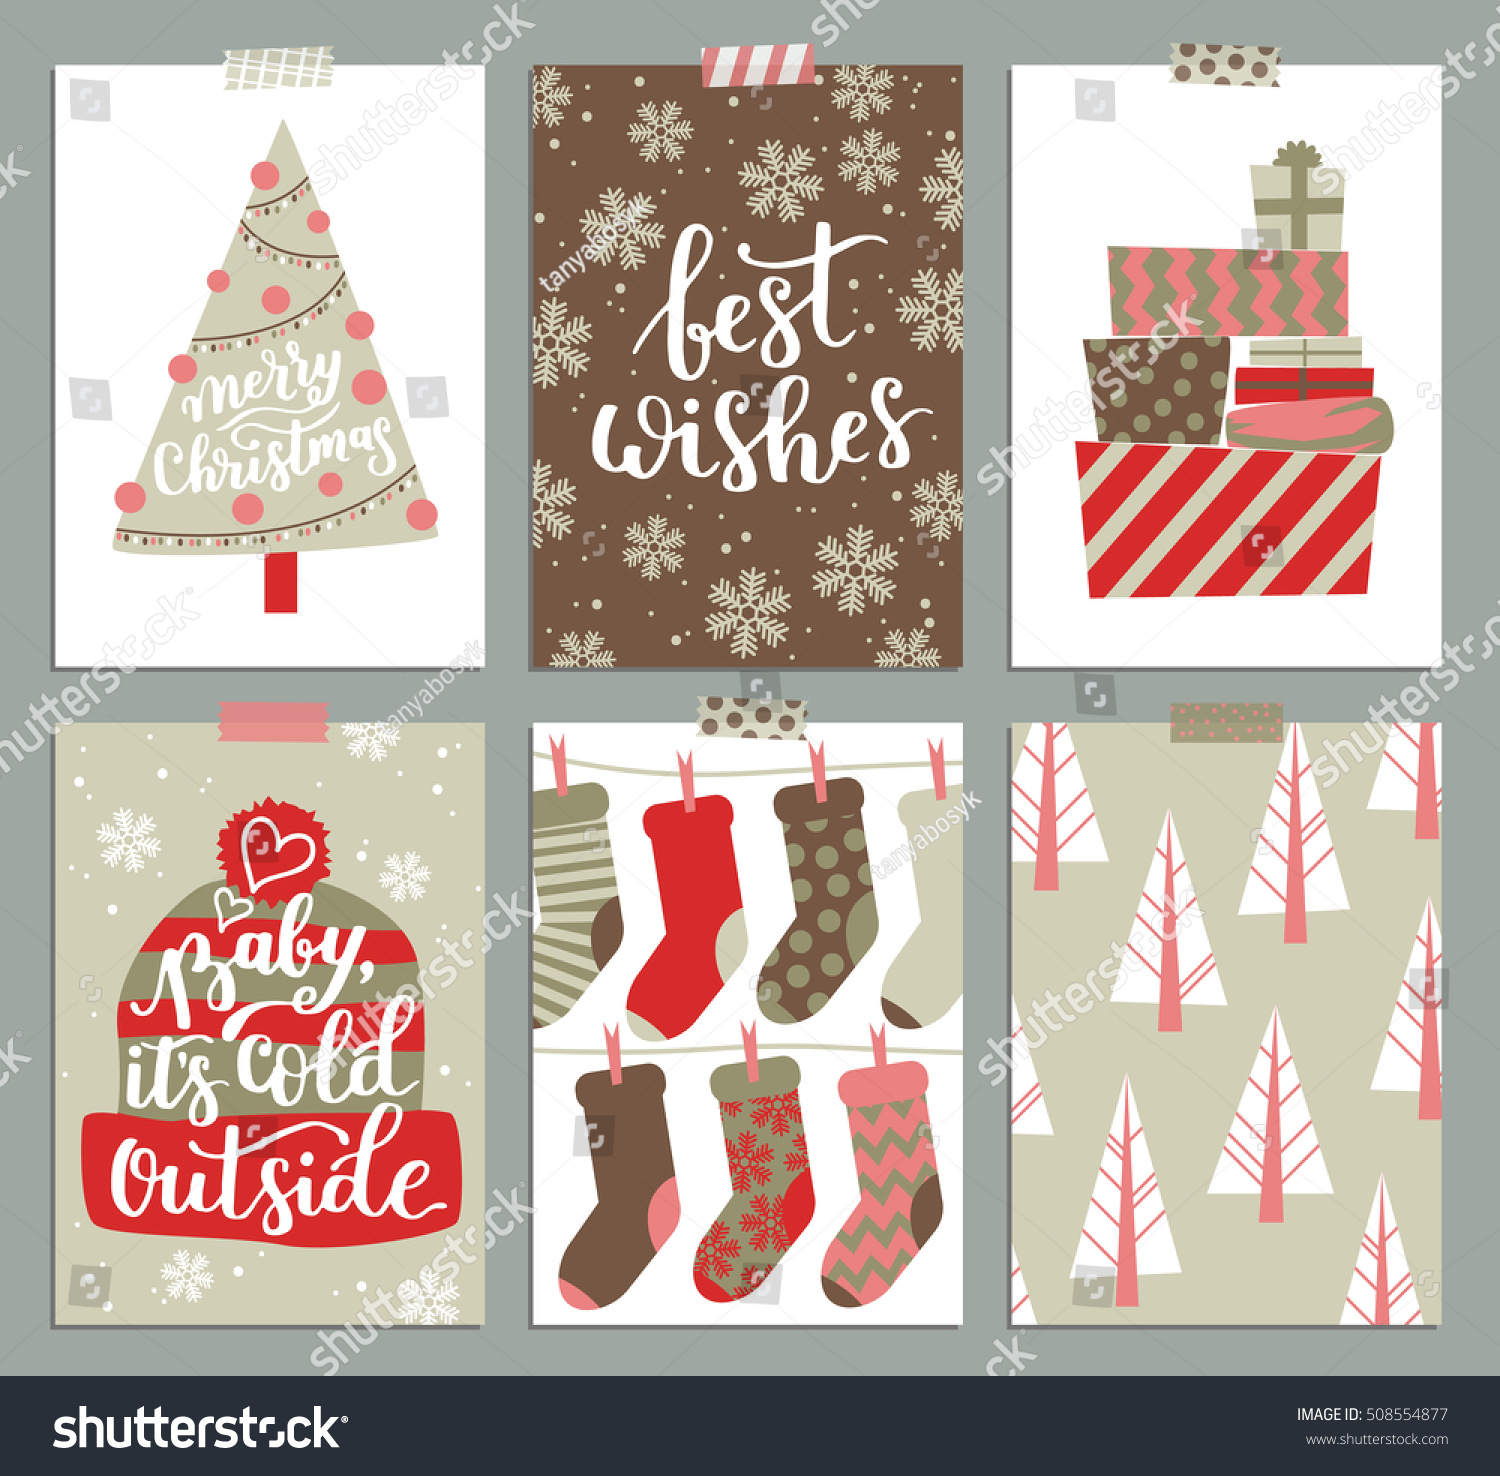 vector collection christmas poster templates christmas stock vector collection of christmas poster templates christmas set of christmas greeting cards bright colors